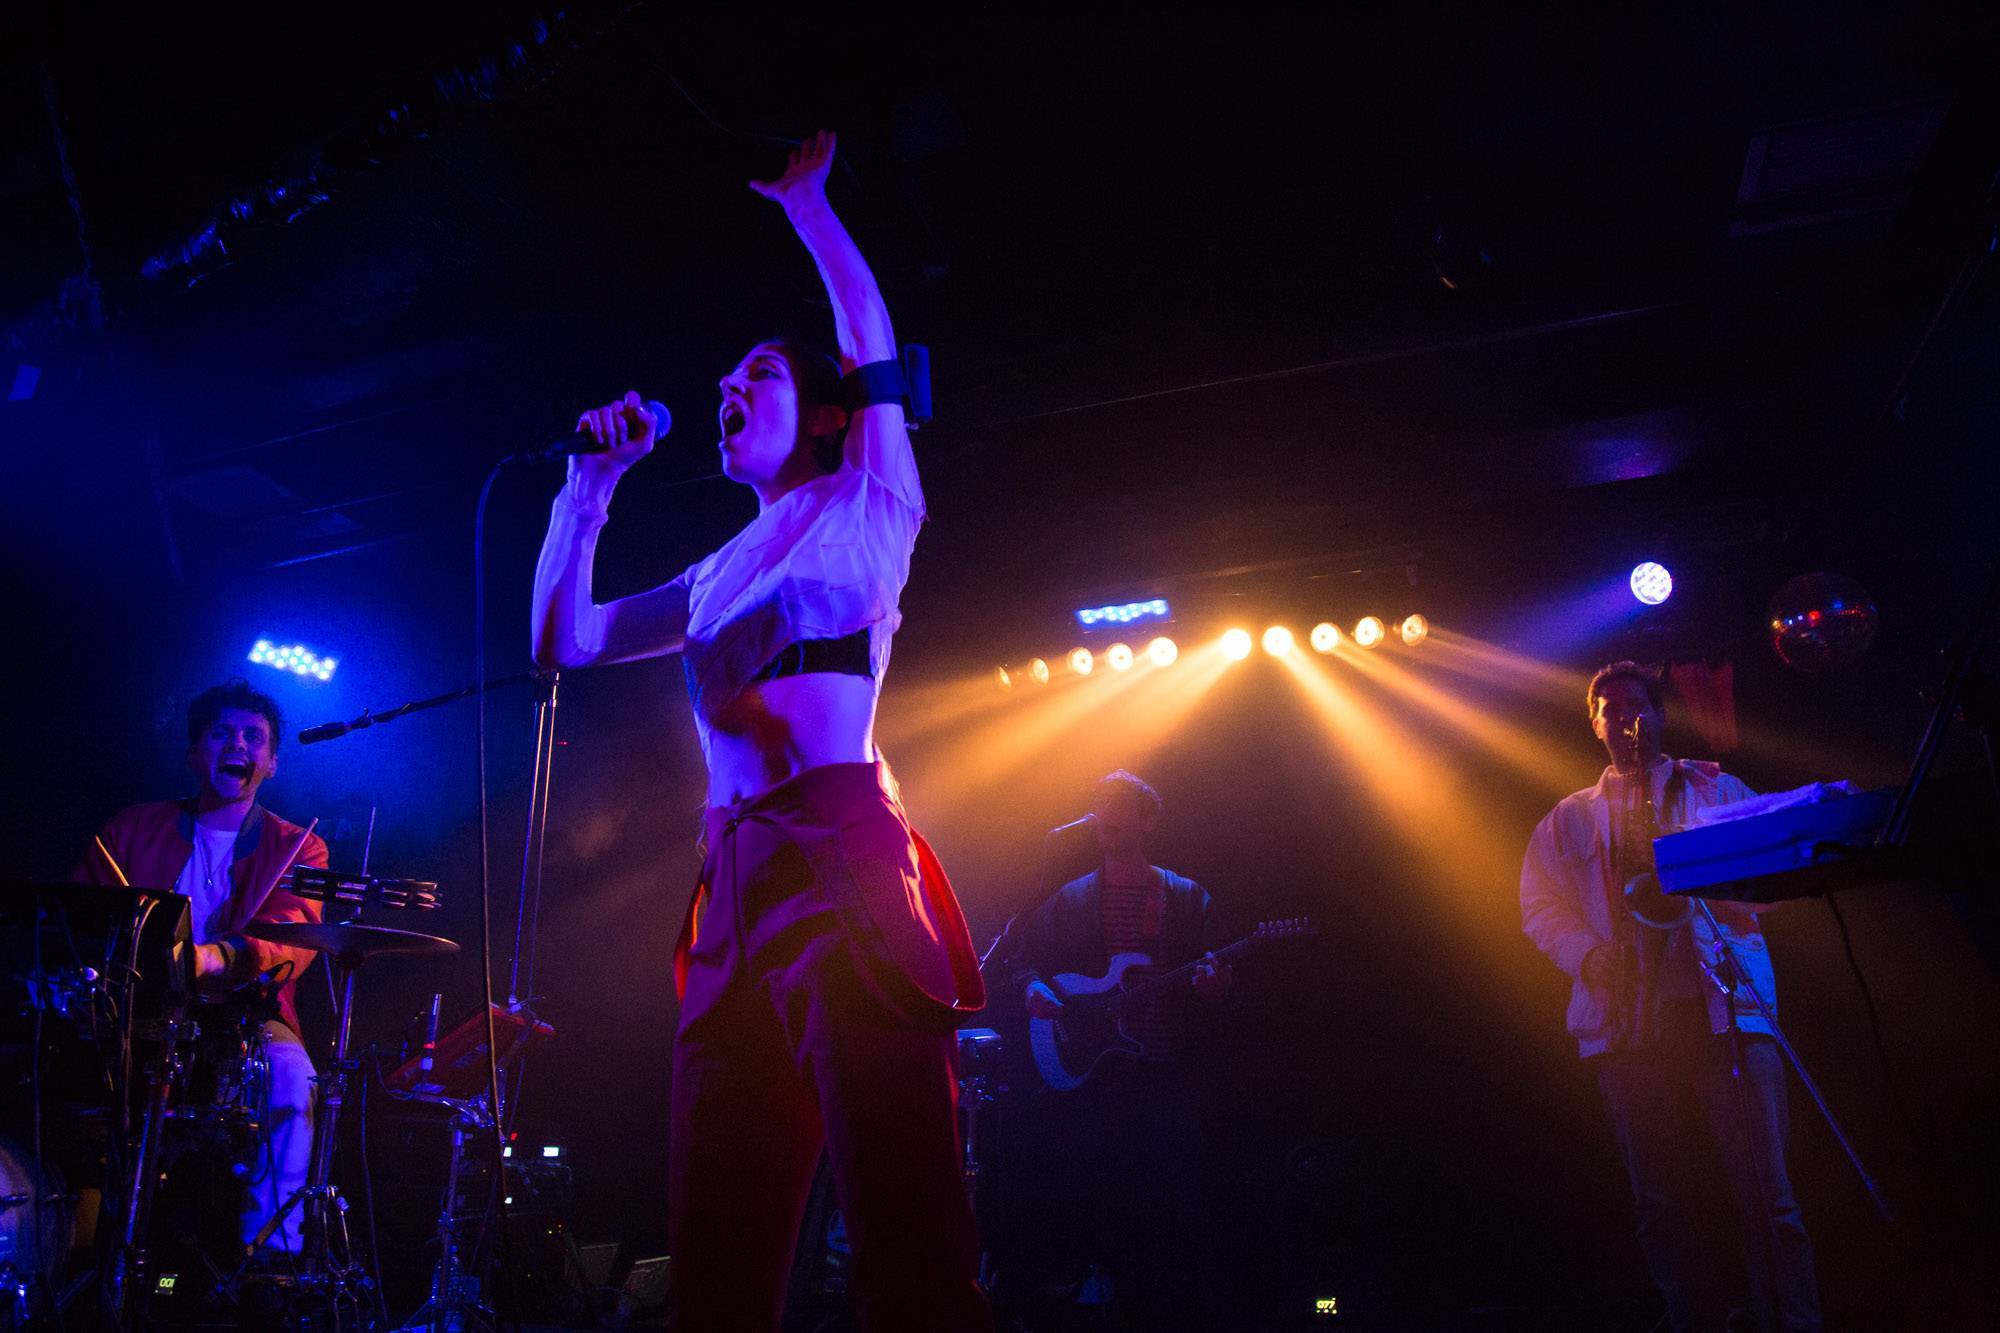 Chairlift at the Biltmore Cabaret, Vancouver, Mar. 24 2016. Kirk Chantraine photo.